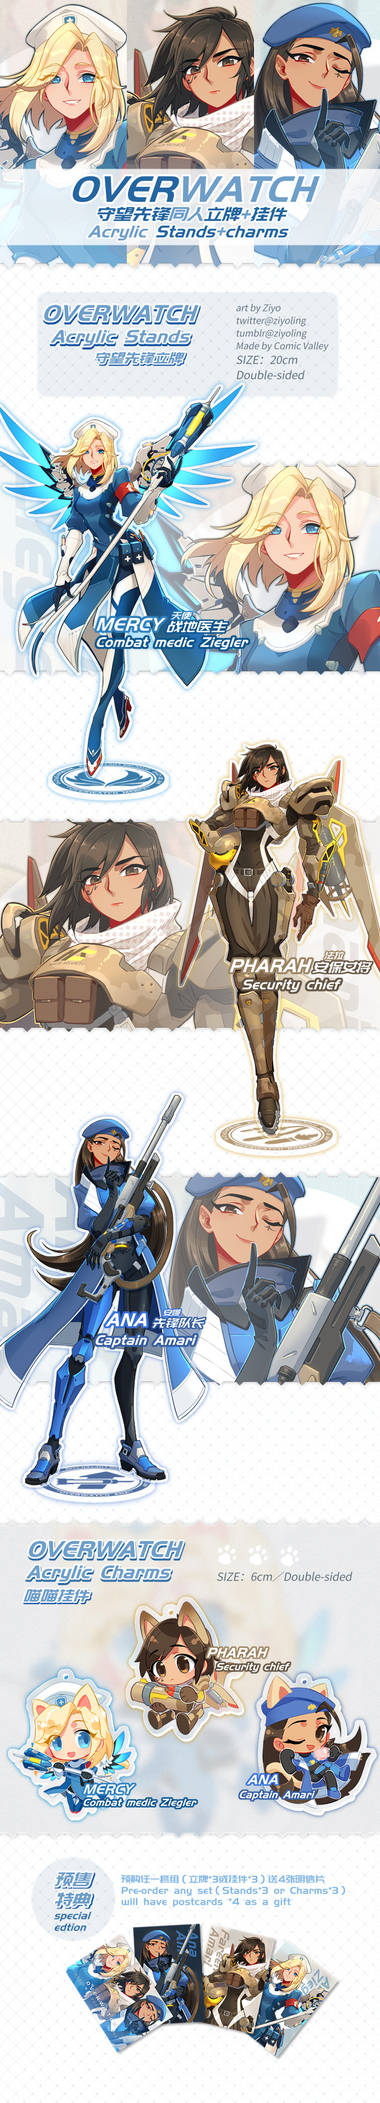 OVERWATCH Acrylic Stands + Charms